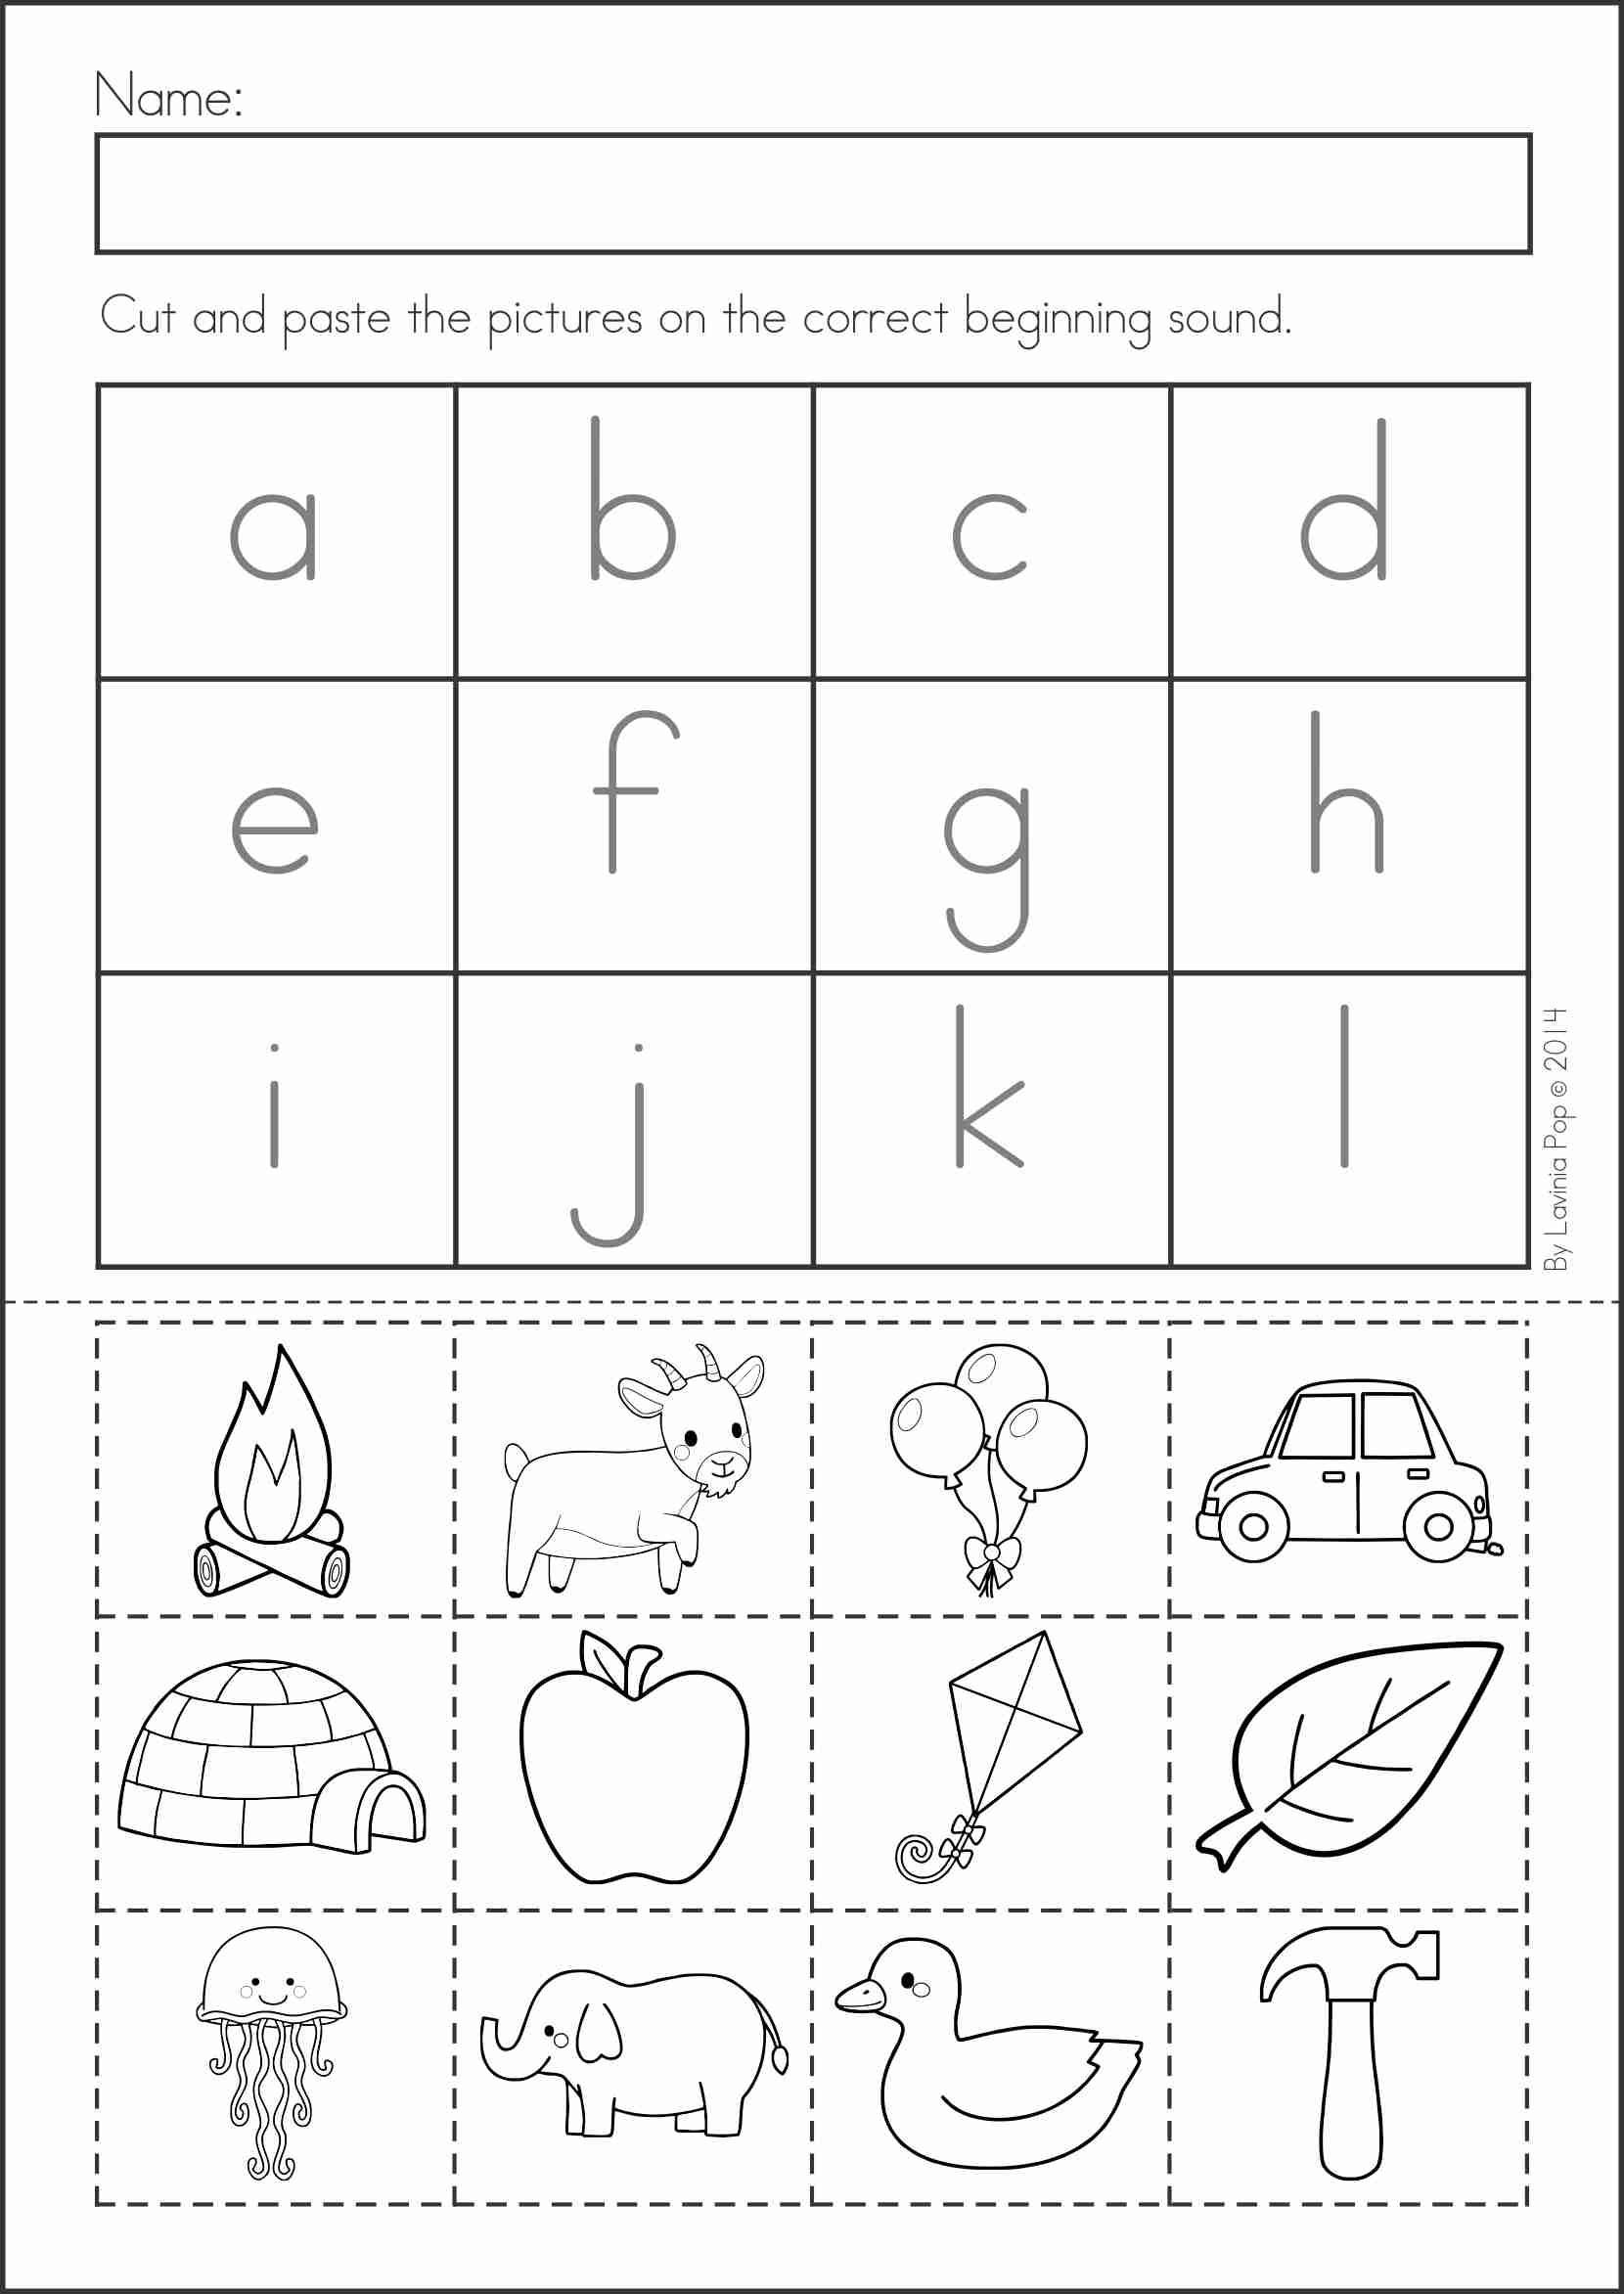 Teach Child How To Read Free Addition Cut And Paste